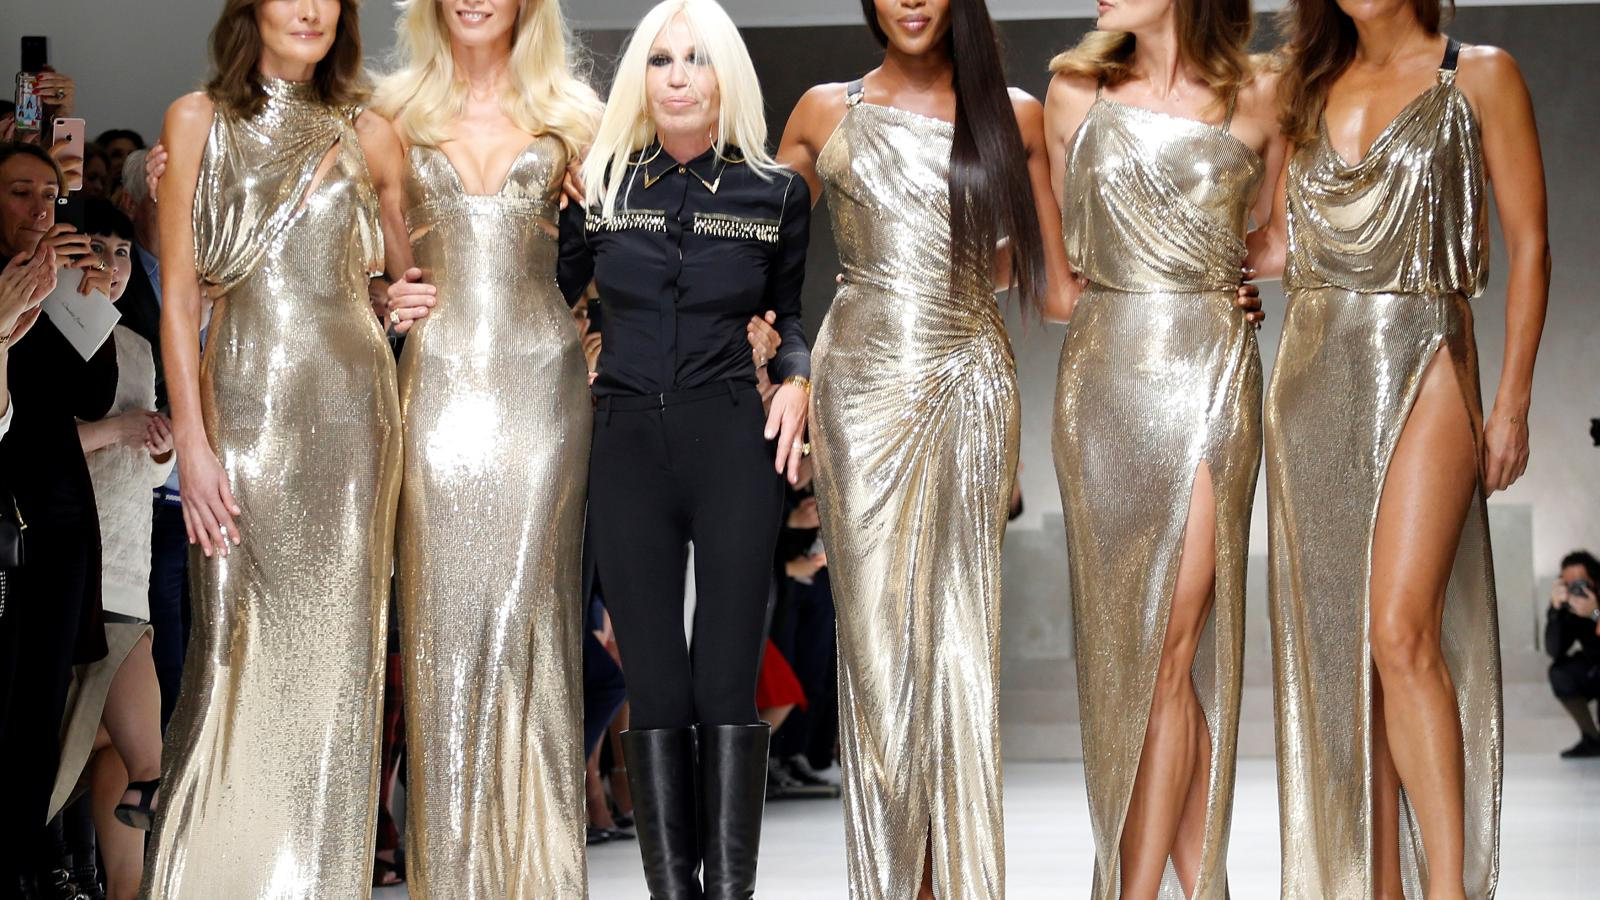 Donatella Versace On A Key Difference In How Men And Women Design For Female Customers Quartz